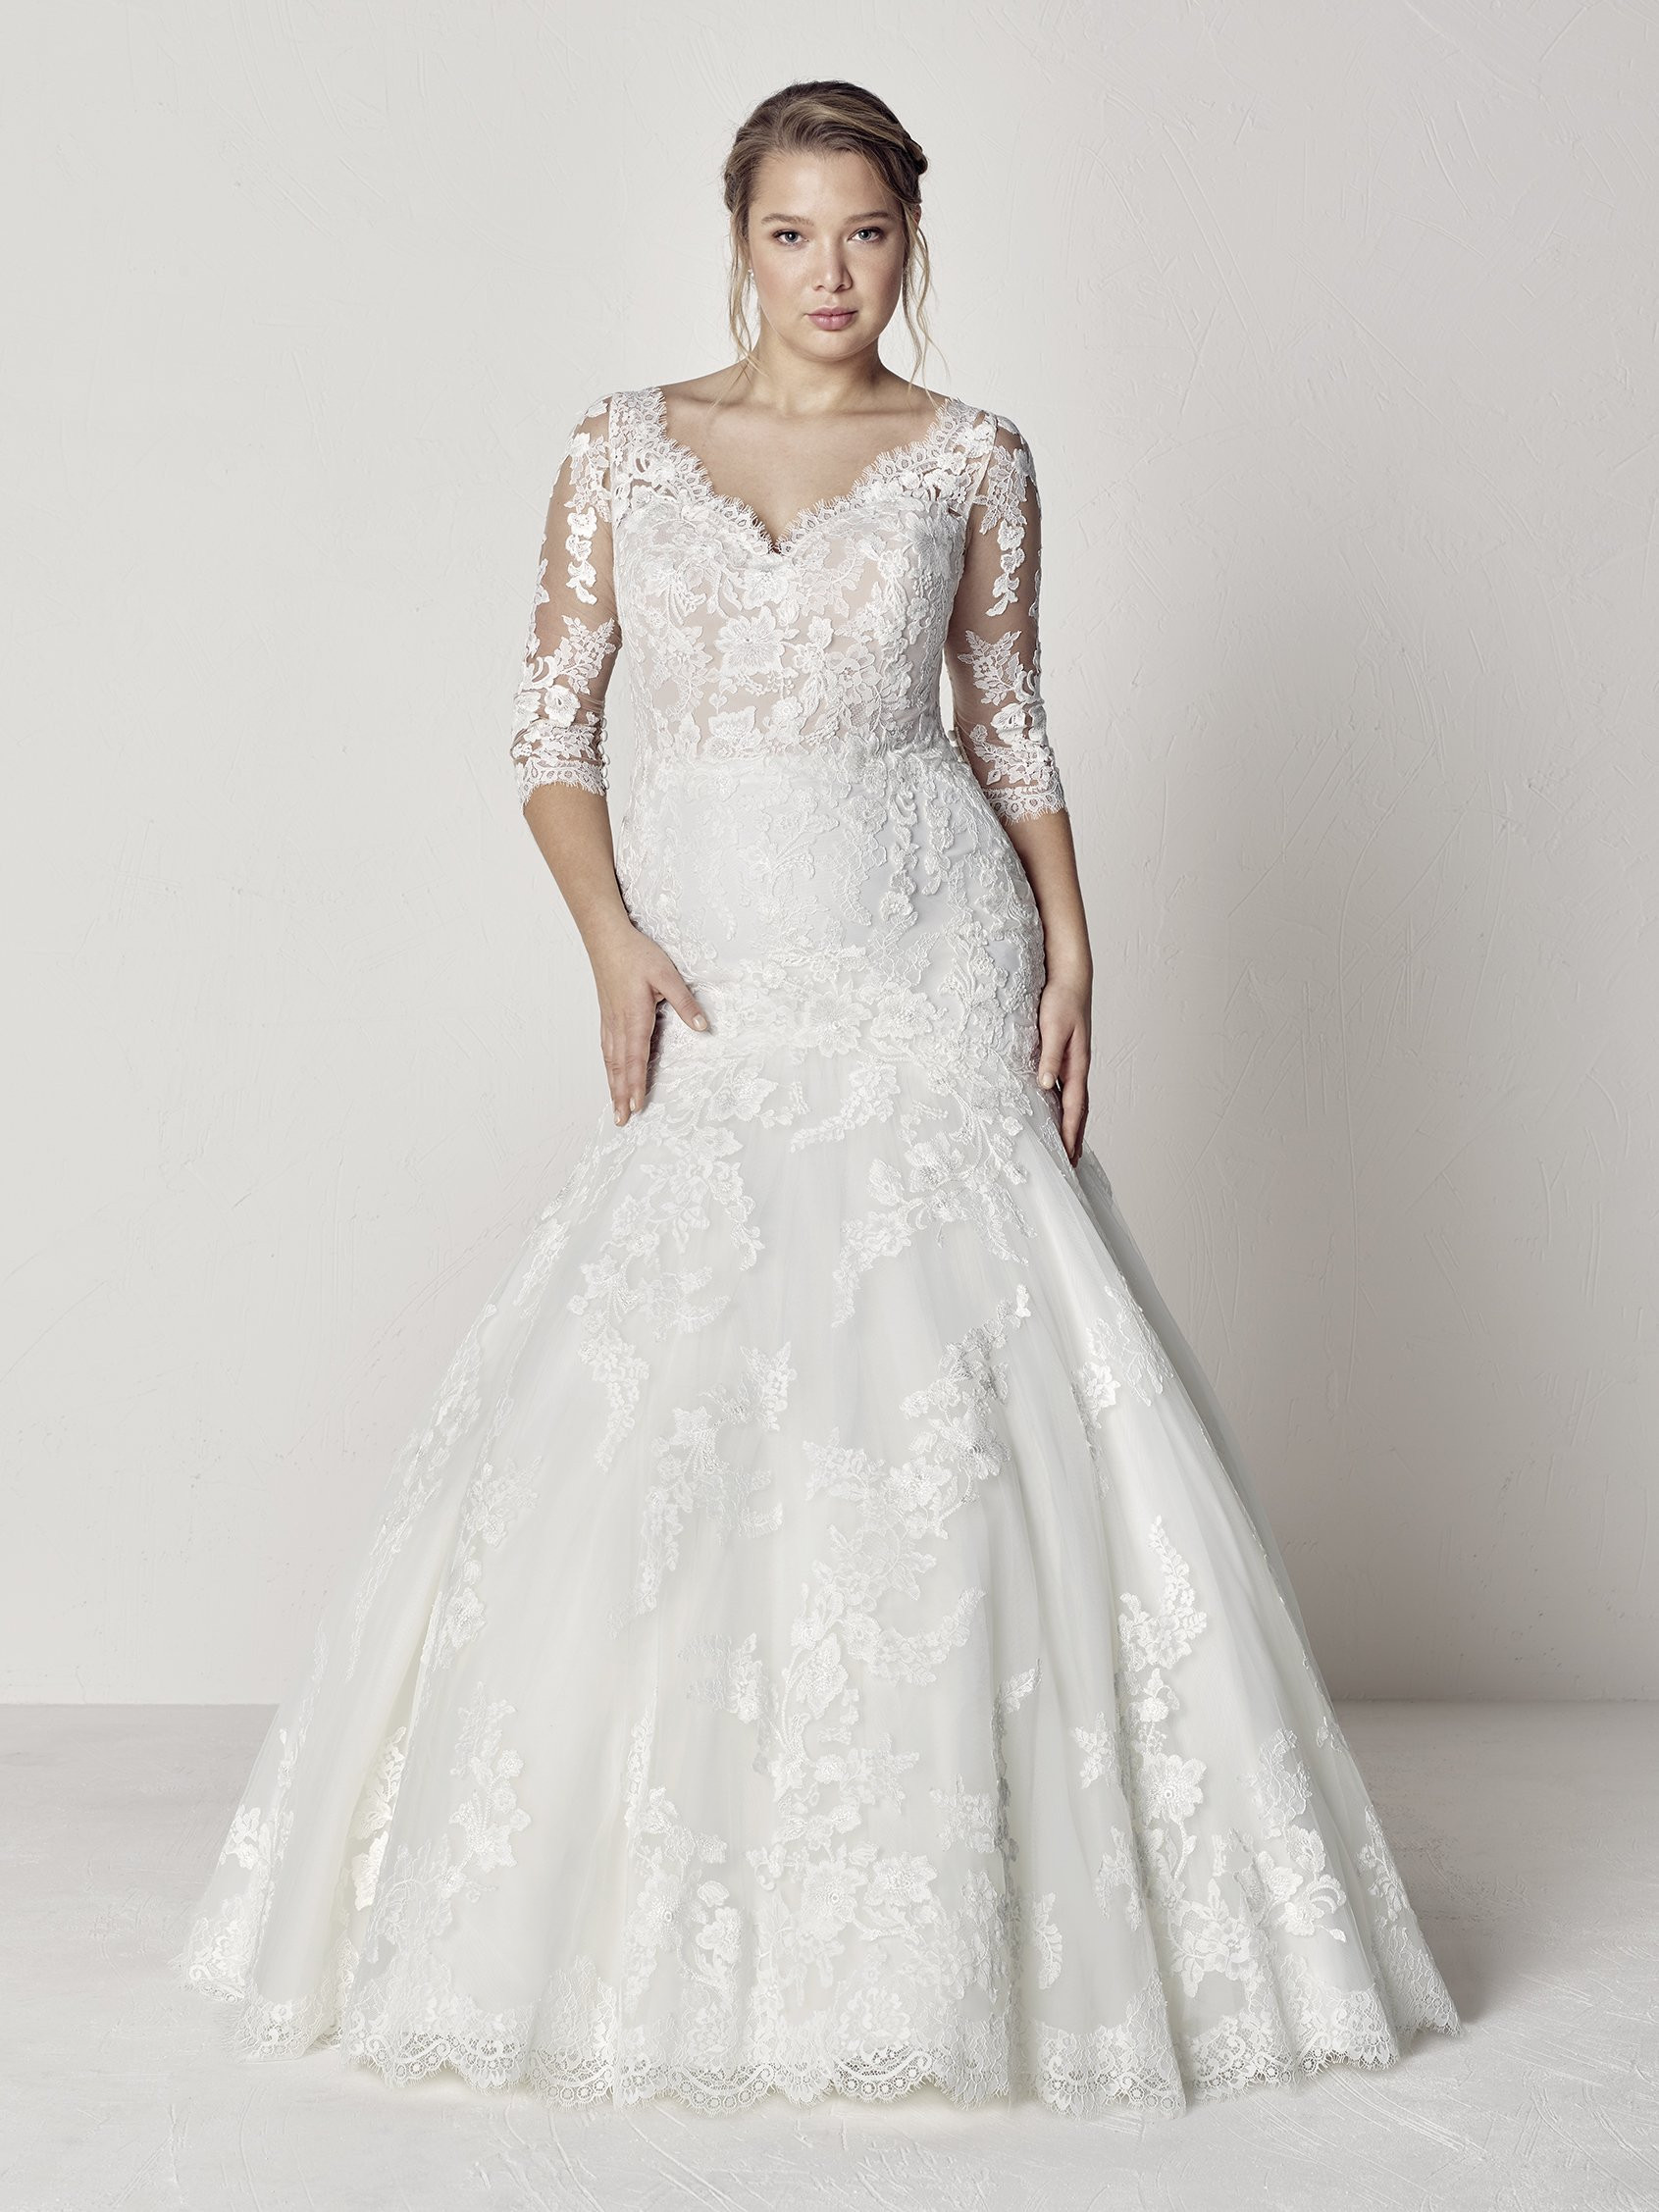 Scalloped V-neck 3/4 Sleeve Lace Fit And Flare Wedding Dress ...